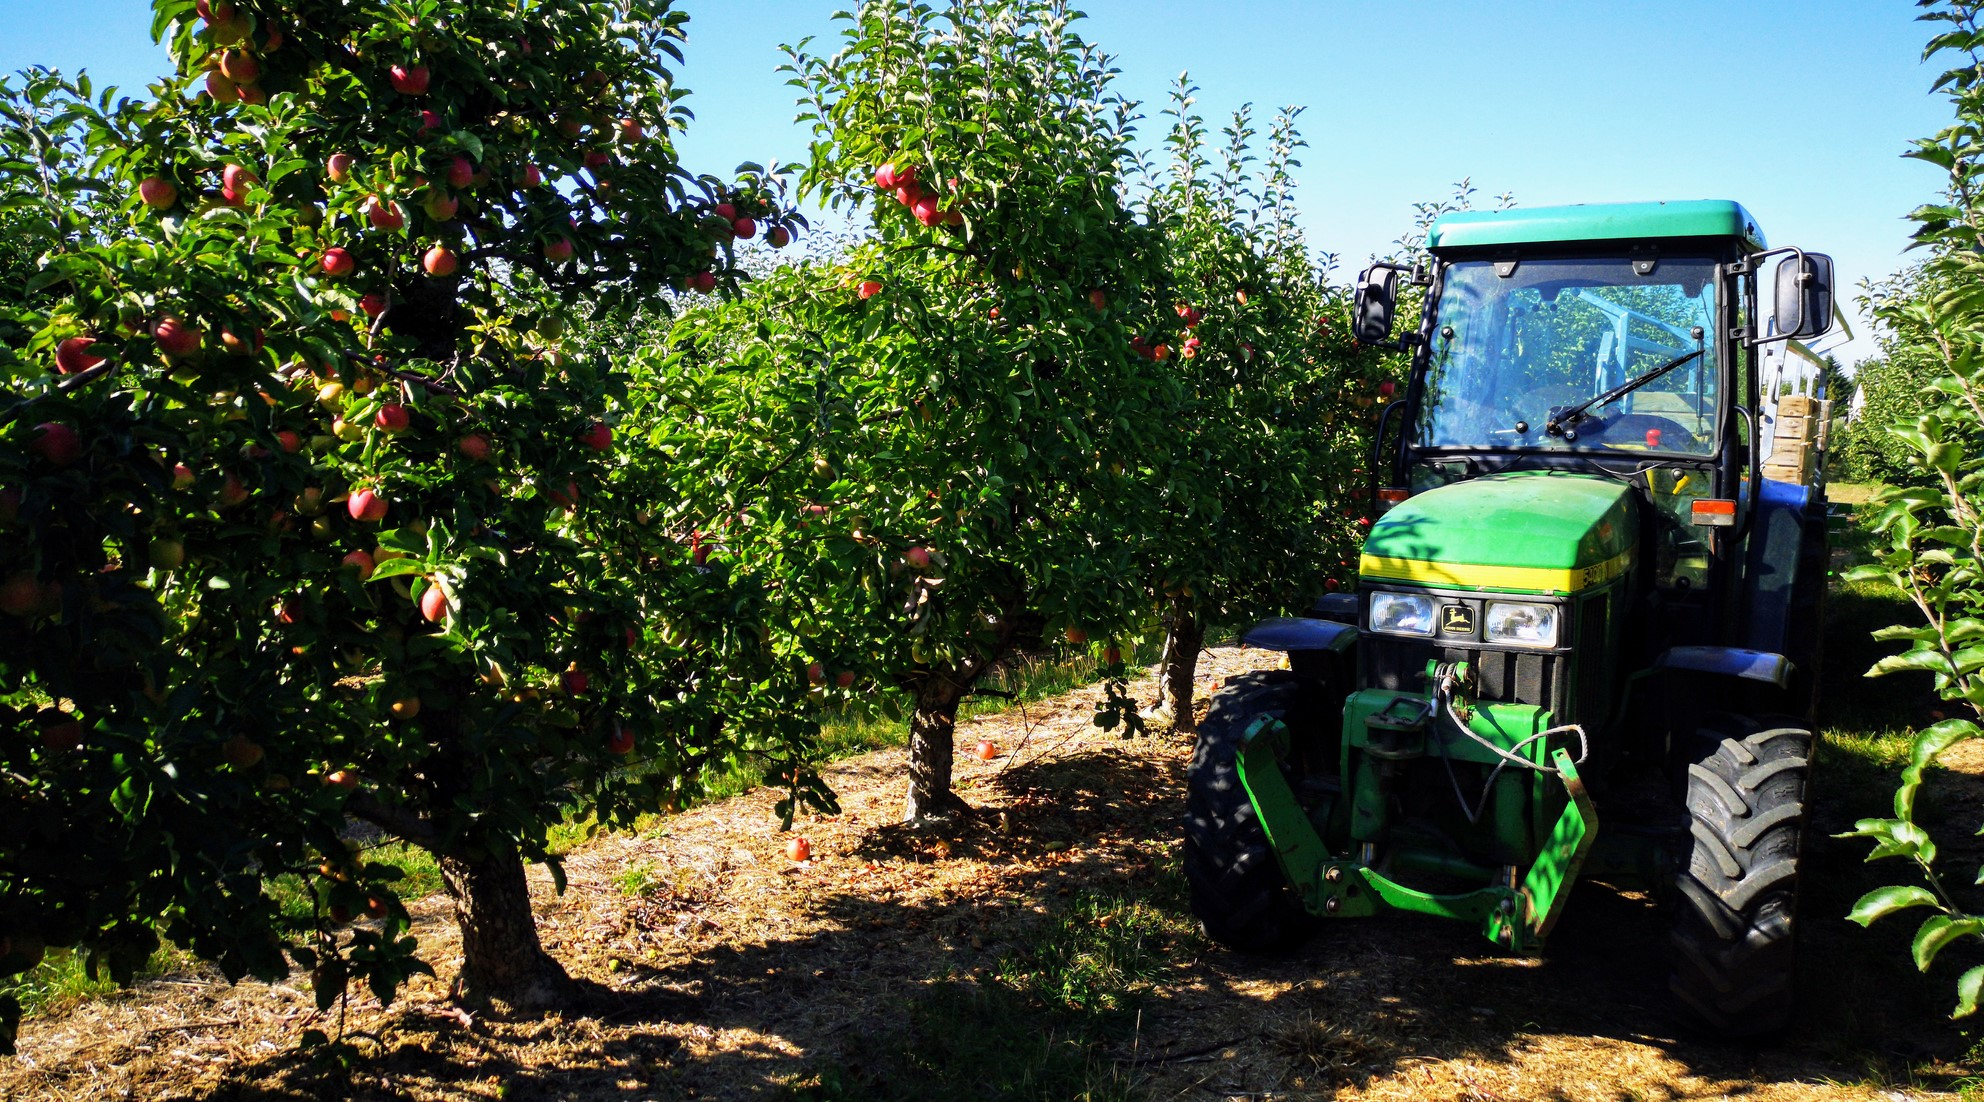 Tractor in an apple orchard